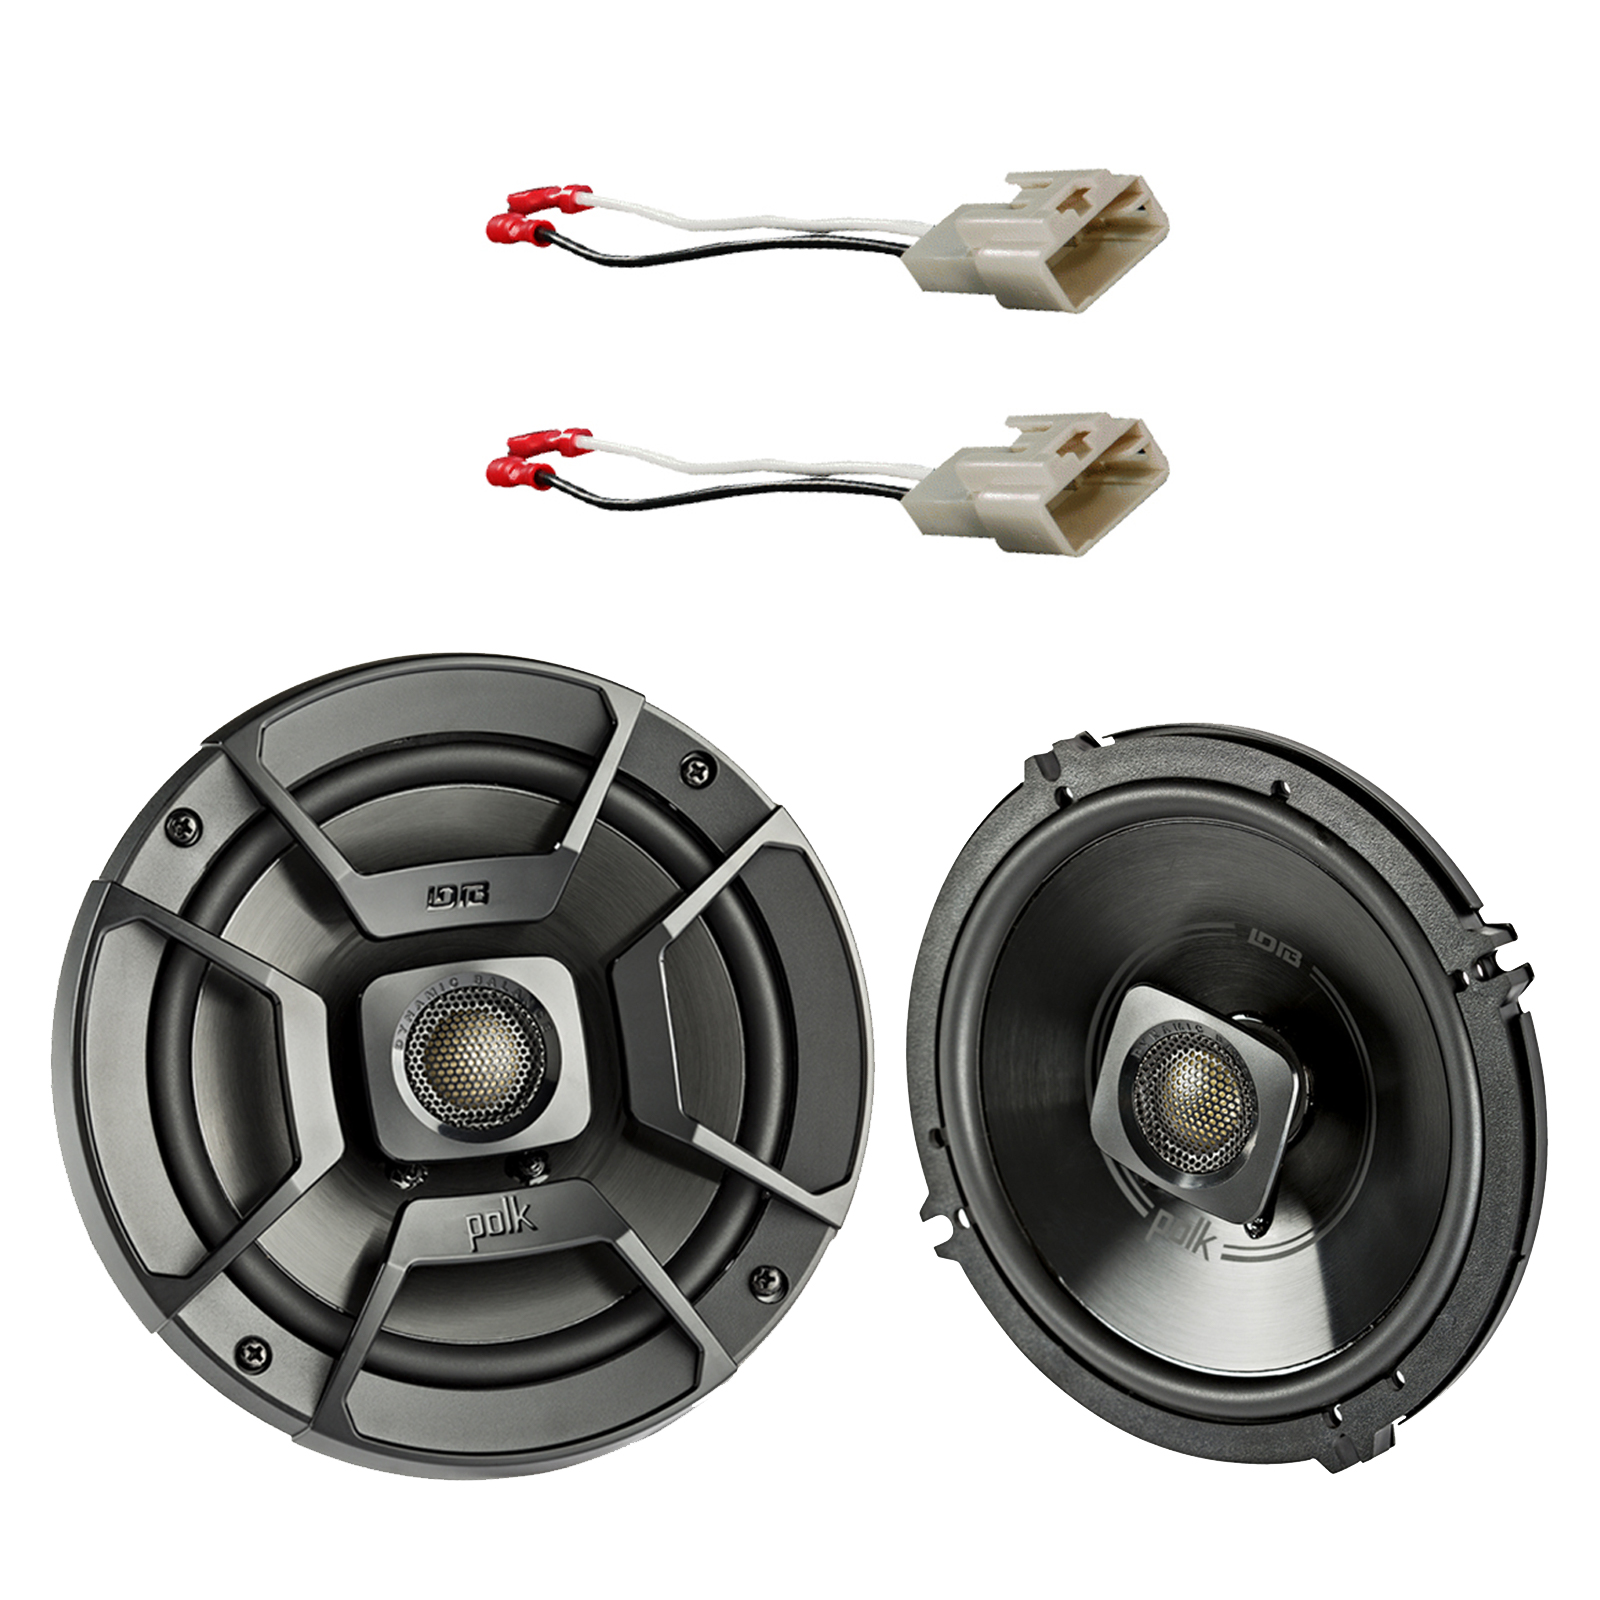 """2x Polk Audio 6.5"""" 300W 2 Way Car/Marine ATV Stereo Coaxial Speakers, 2x Metra 72-8104 Speaker Connector for Select Toyota Vehicles"""